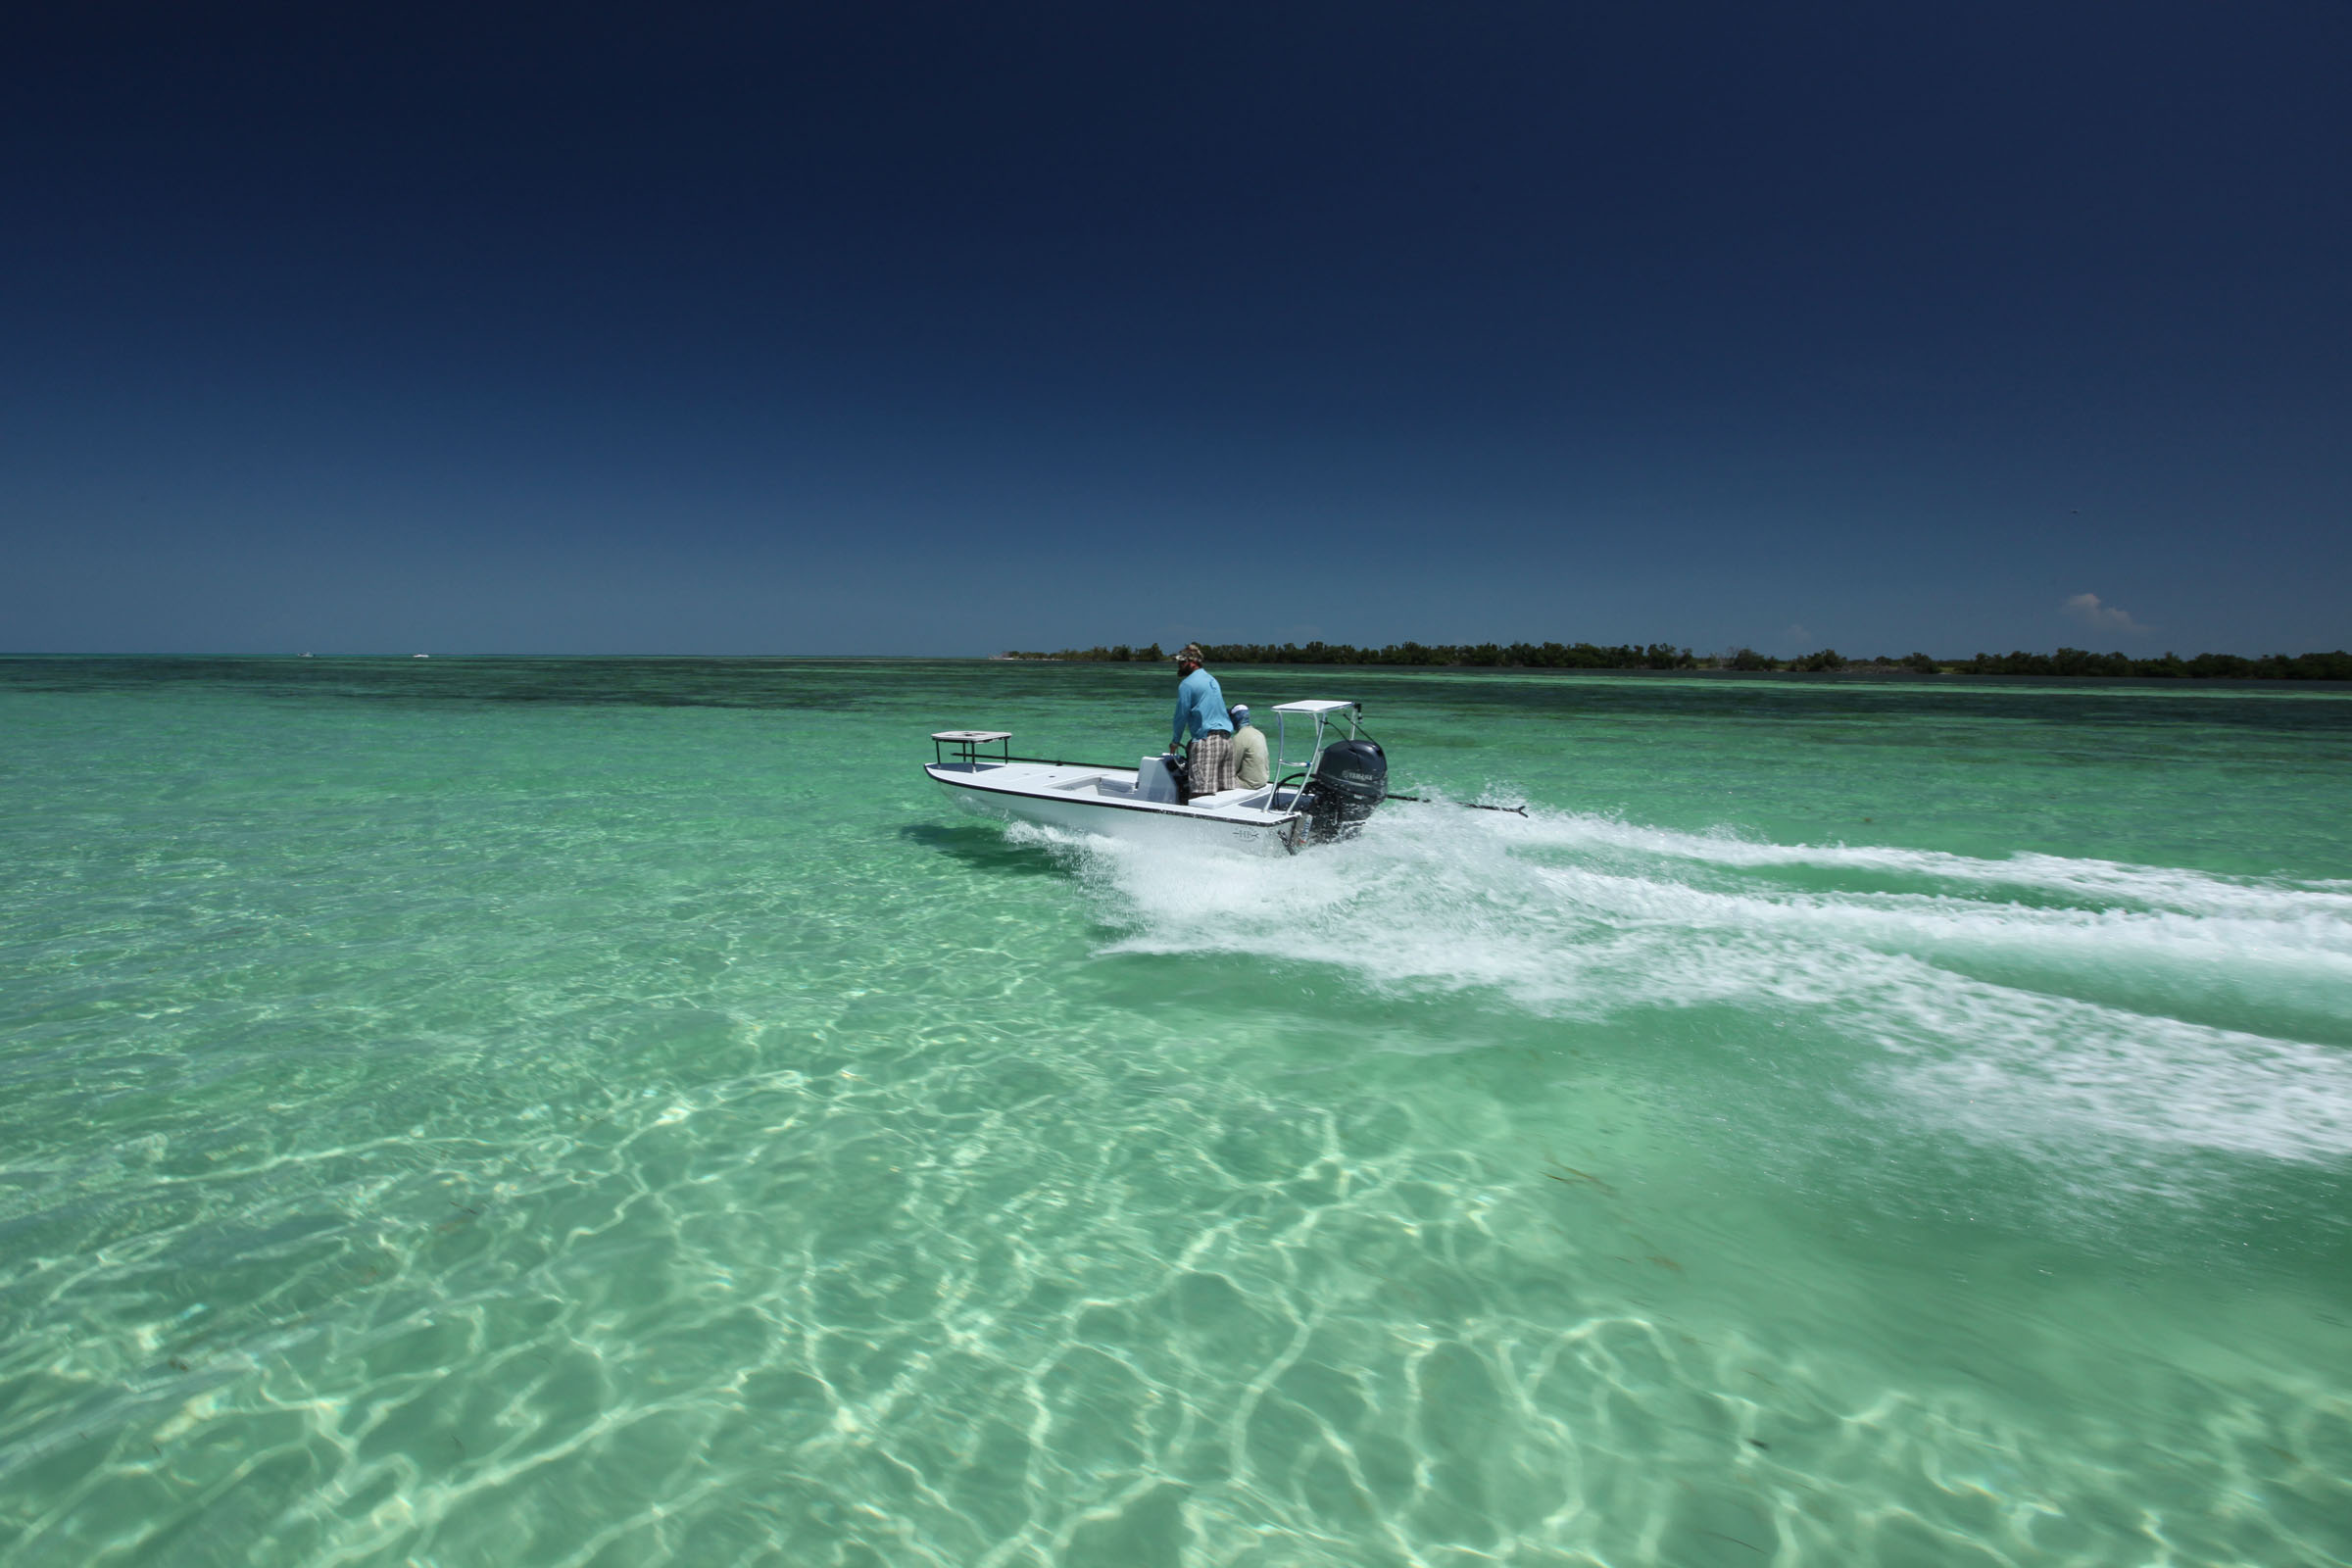 Bryan Bear Holeman rides over clear oceanside sand flats in pursuit of Tarpon on fly